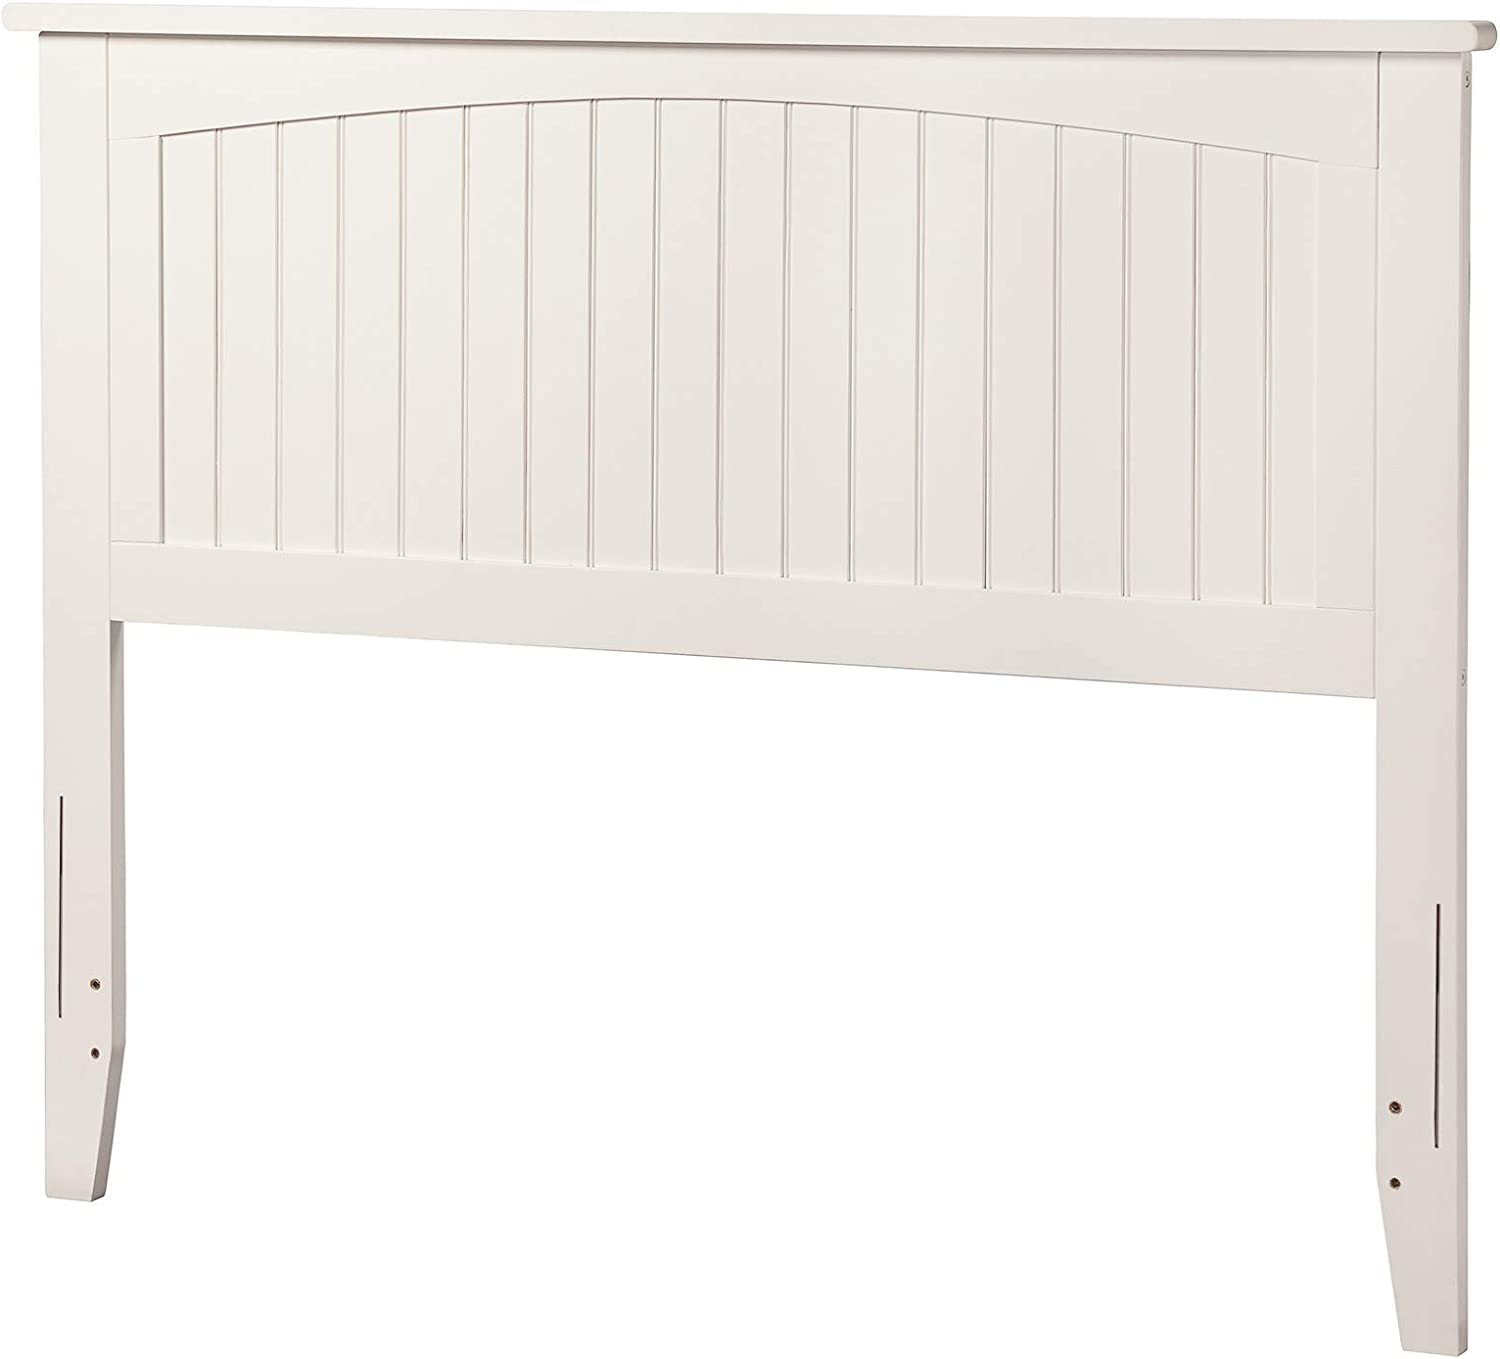 Atlantic Furniture Nantucket Headboard, Full, White